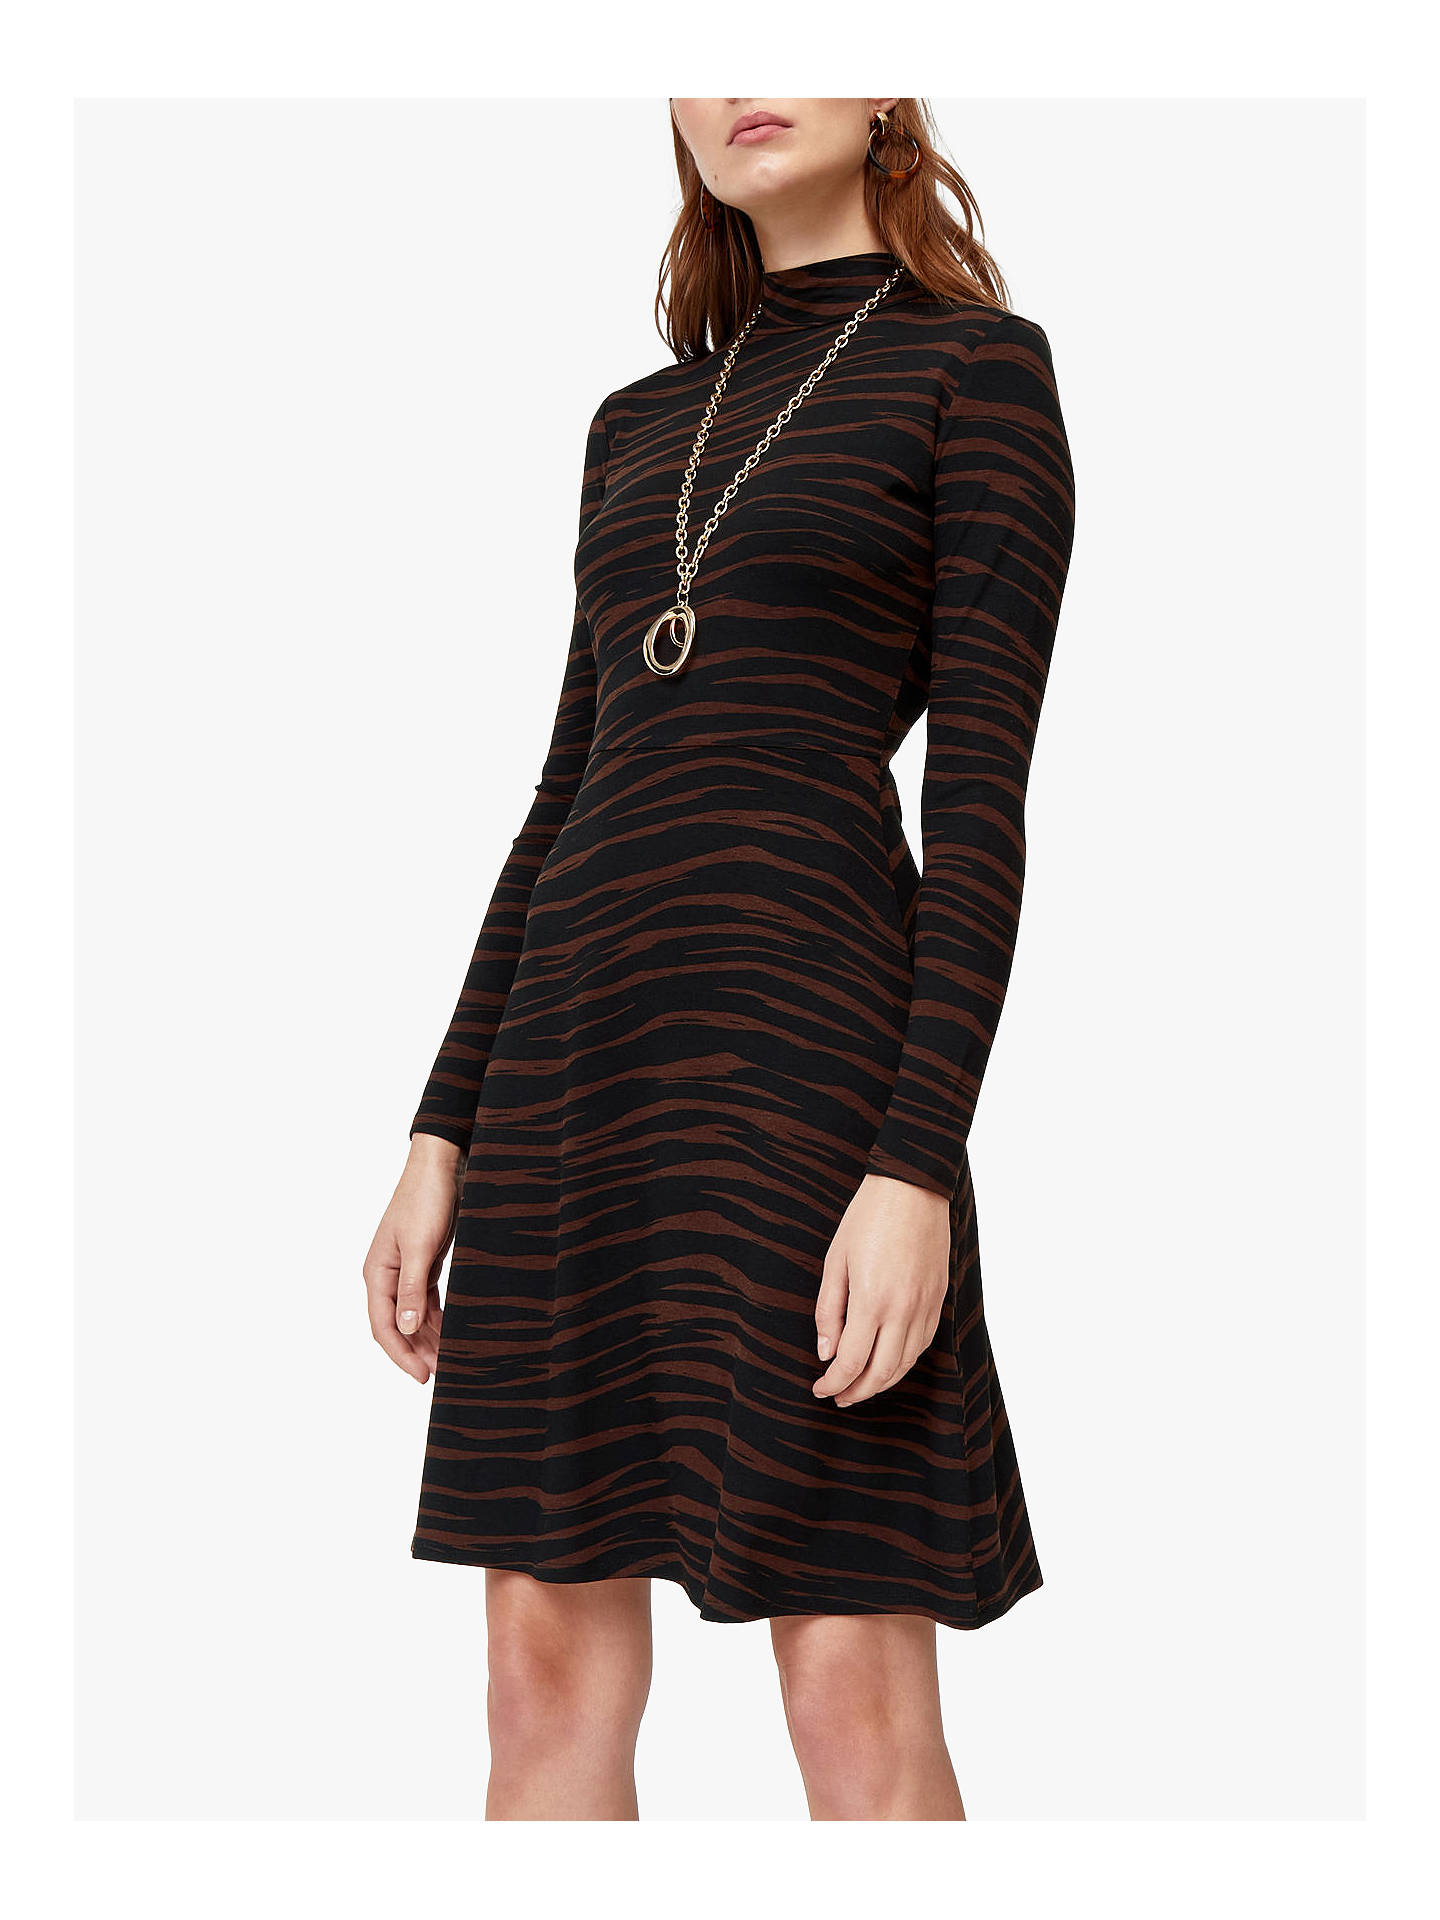 BuyWarehouse Tiger Print Skater Dress 7a12f884d